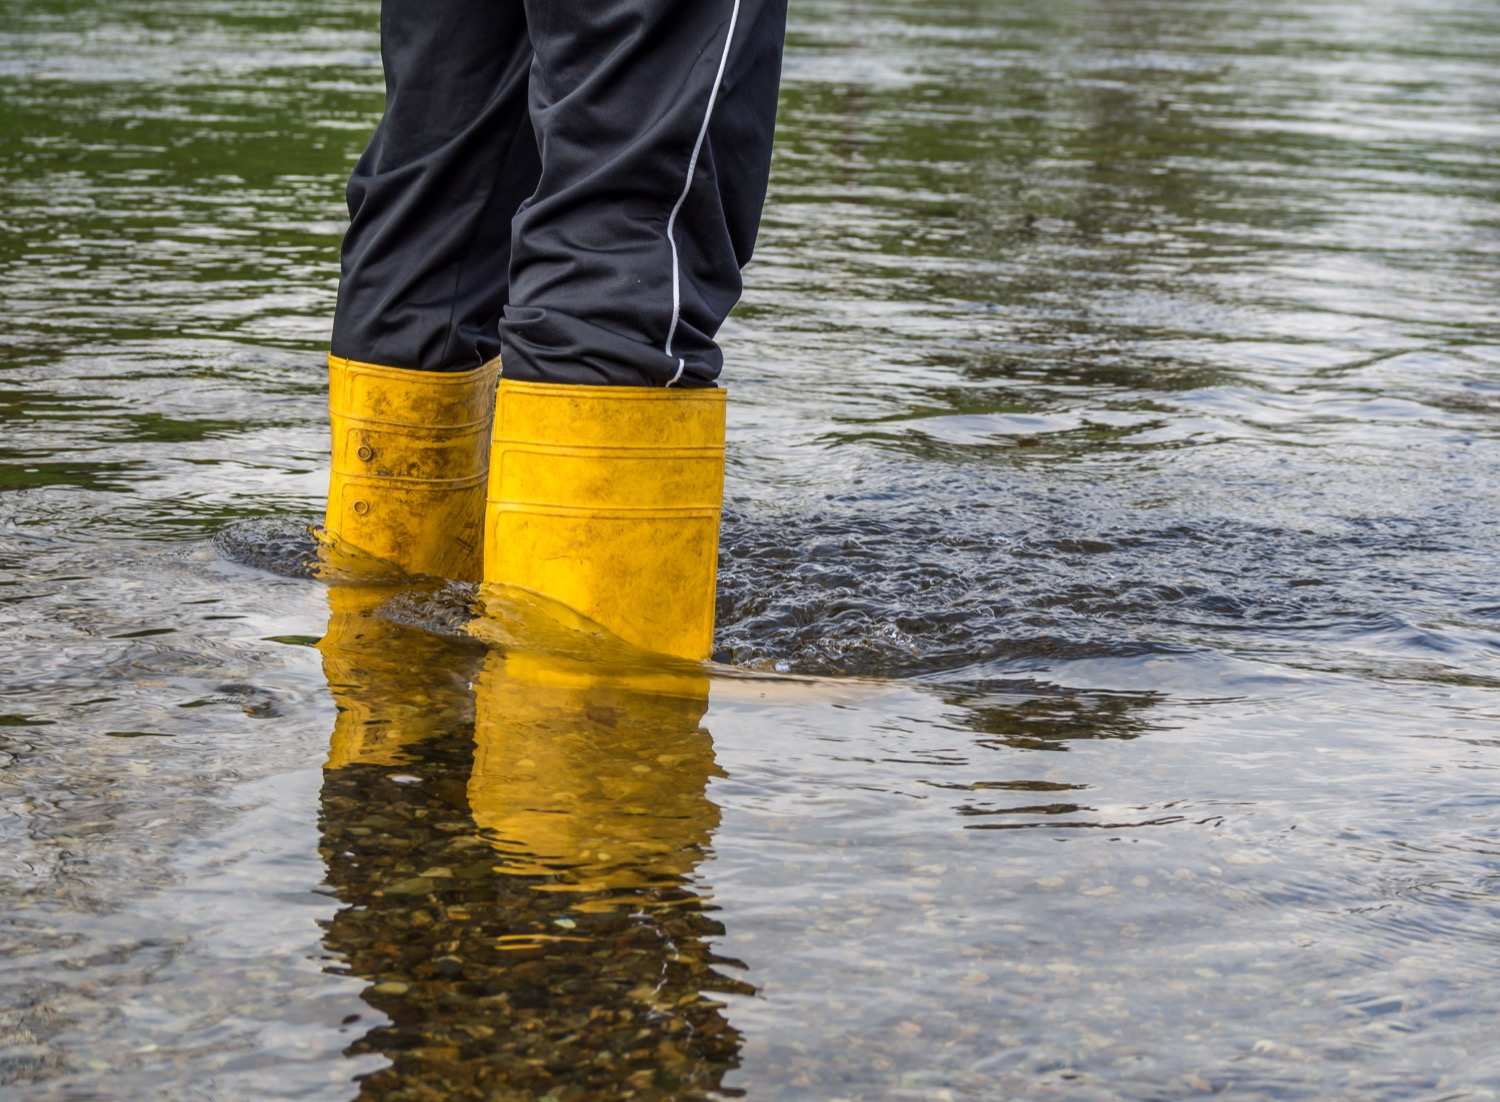 Man wearing yellow boots standing in ankle-deep water.